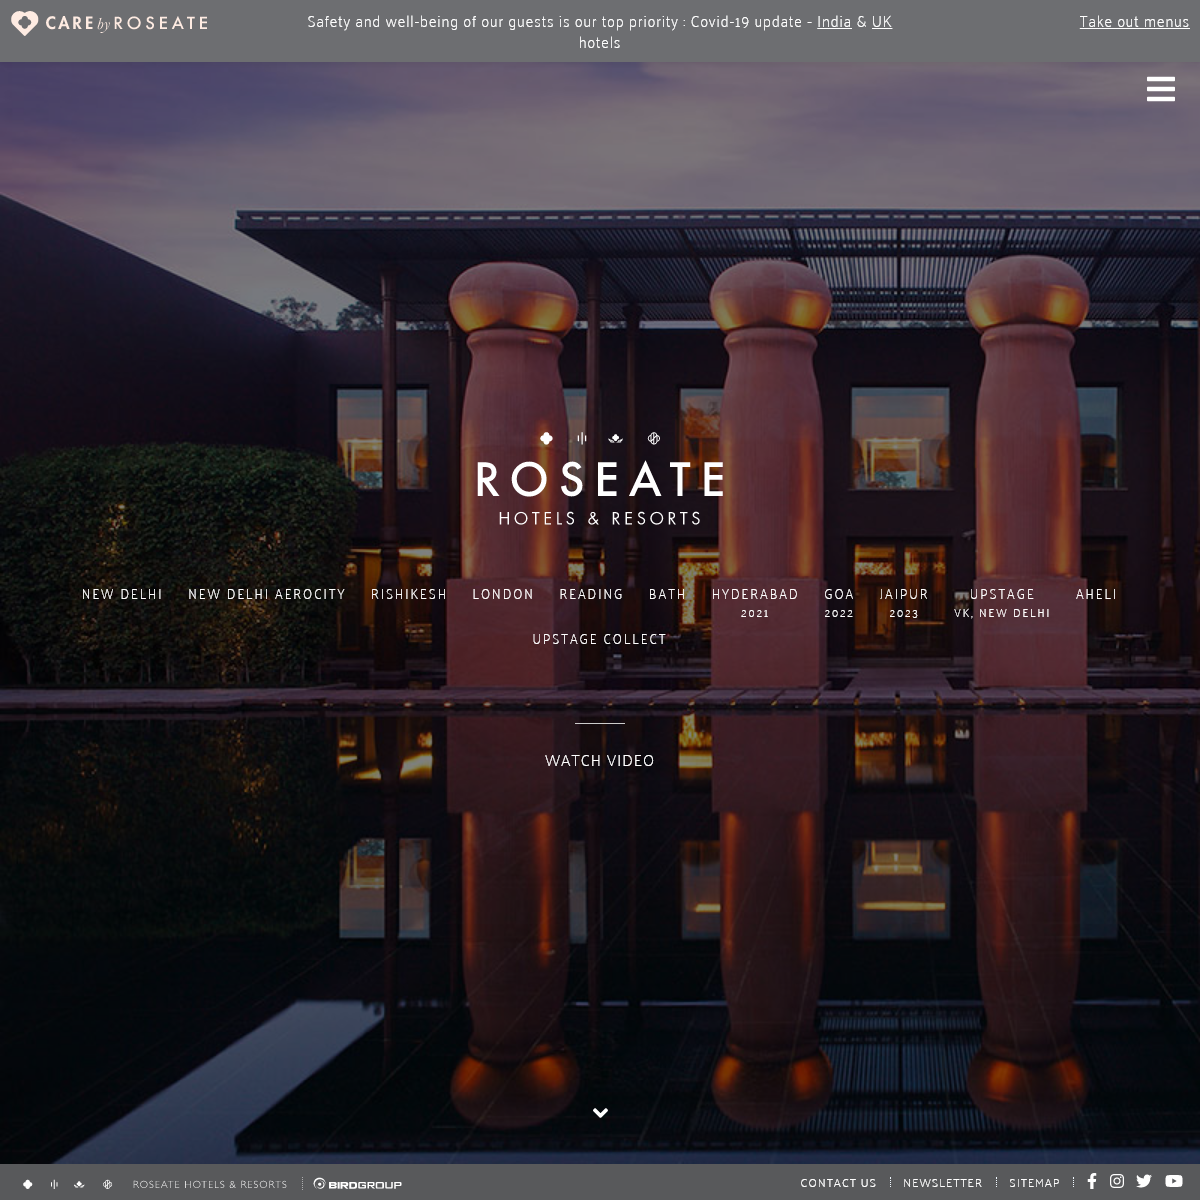 Roseate Hotels and Resorts - Luxury Hotels and Resorts in India & United Kingdom